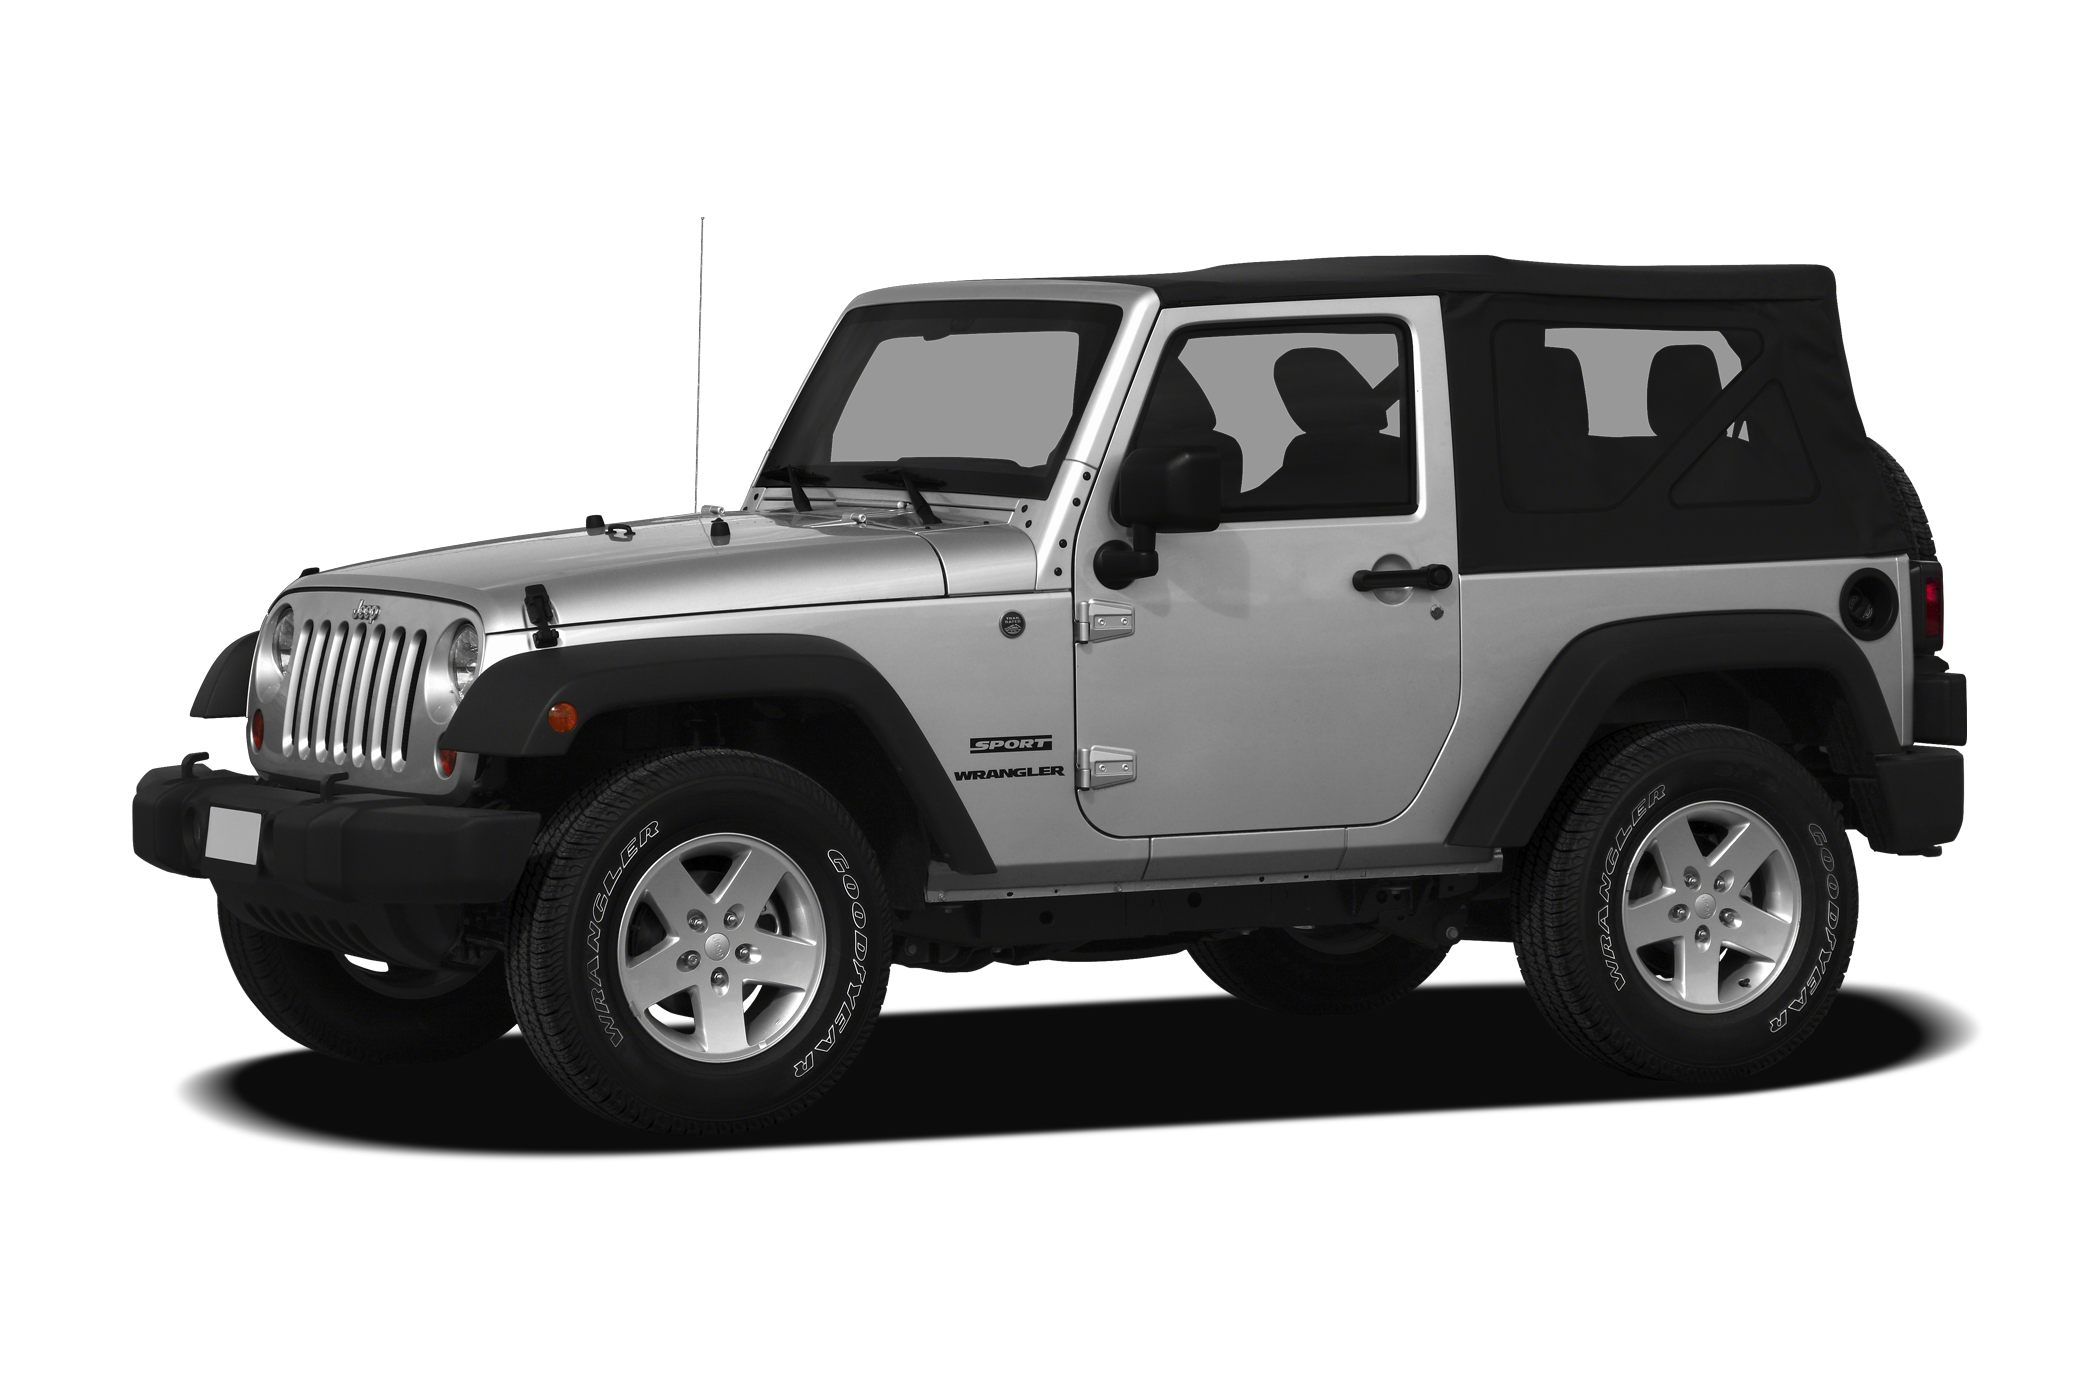 2011 Jeep Wrangler Sahara SUV for sale in Beckley for $21,995 with 74,892 miles.